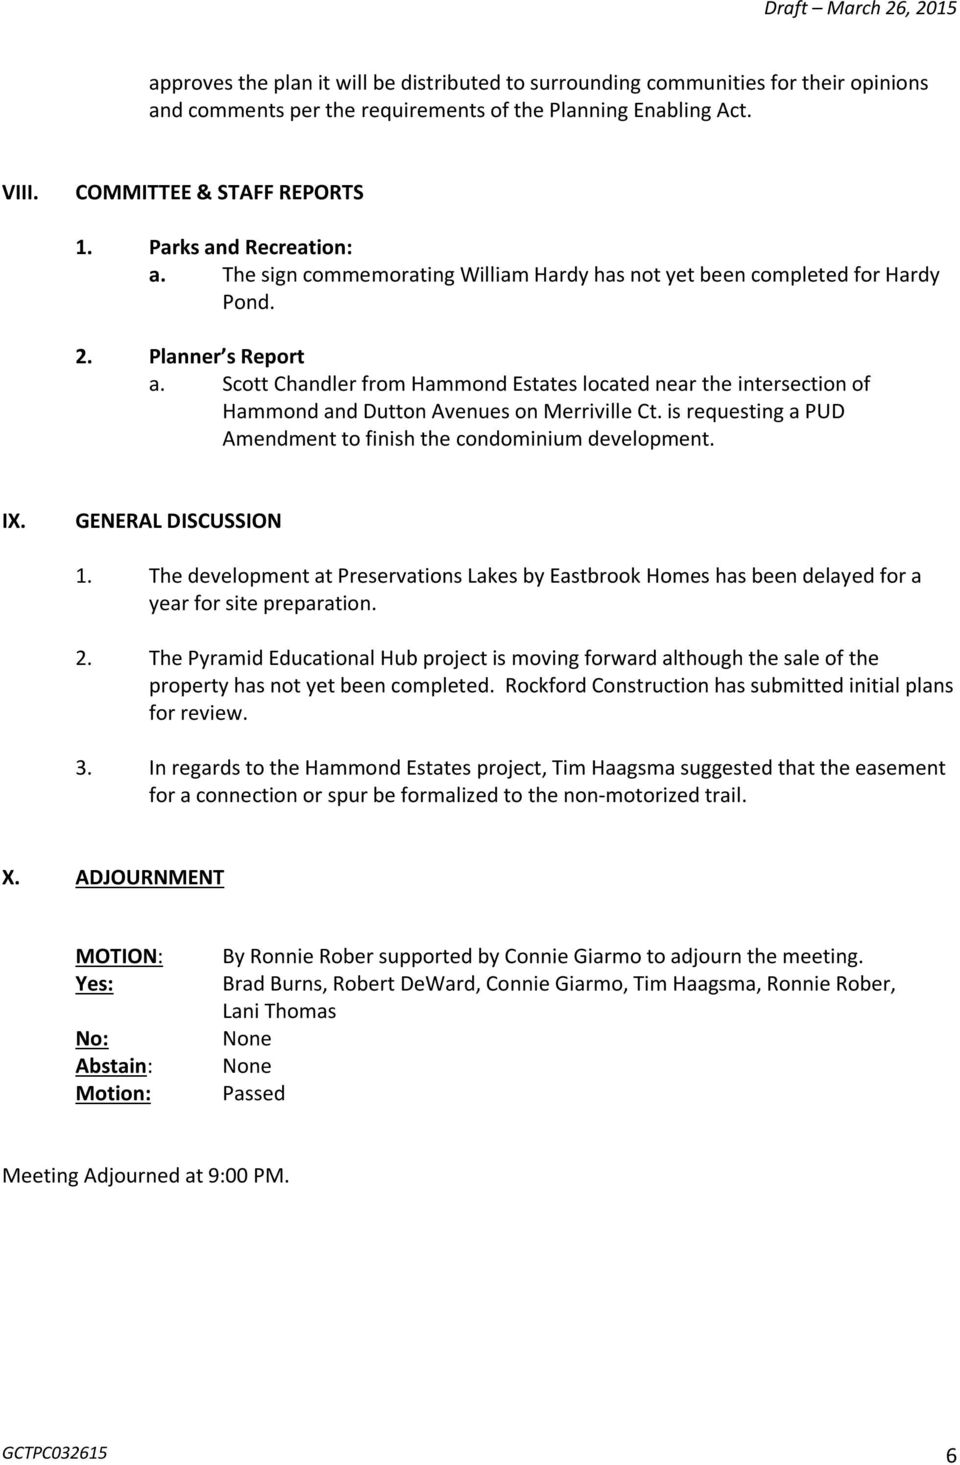 Scott Chandler from Hammond Estates located near the intersection of Hammond and Dutton Avenues on Merriville Ct. is requesting a PUD Amendment to finish the condominium development. IX.